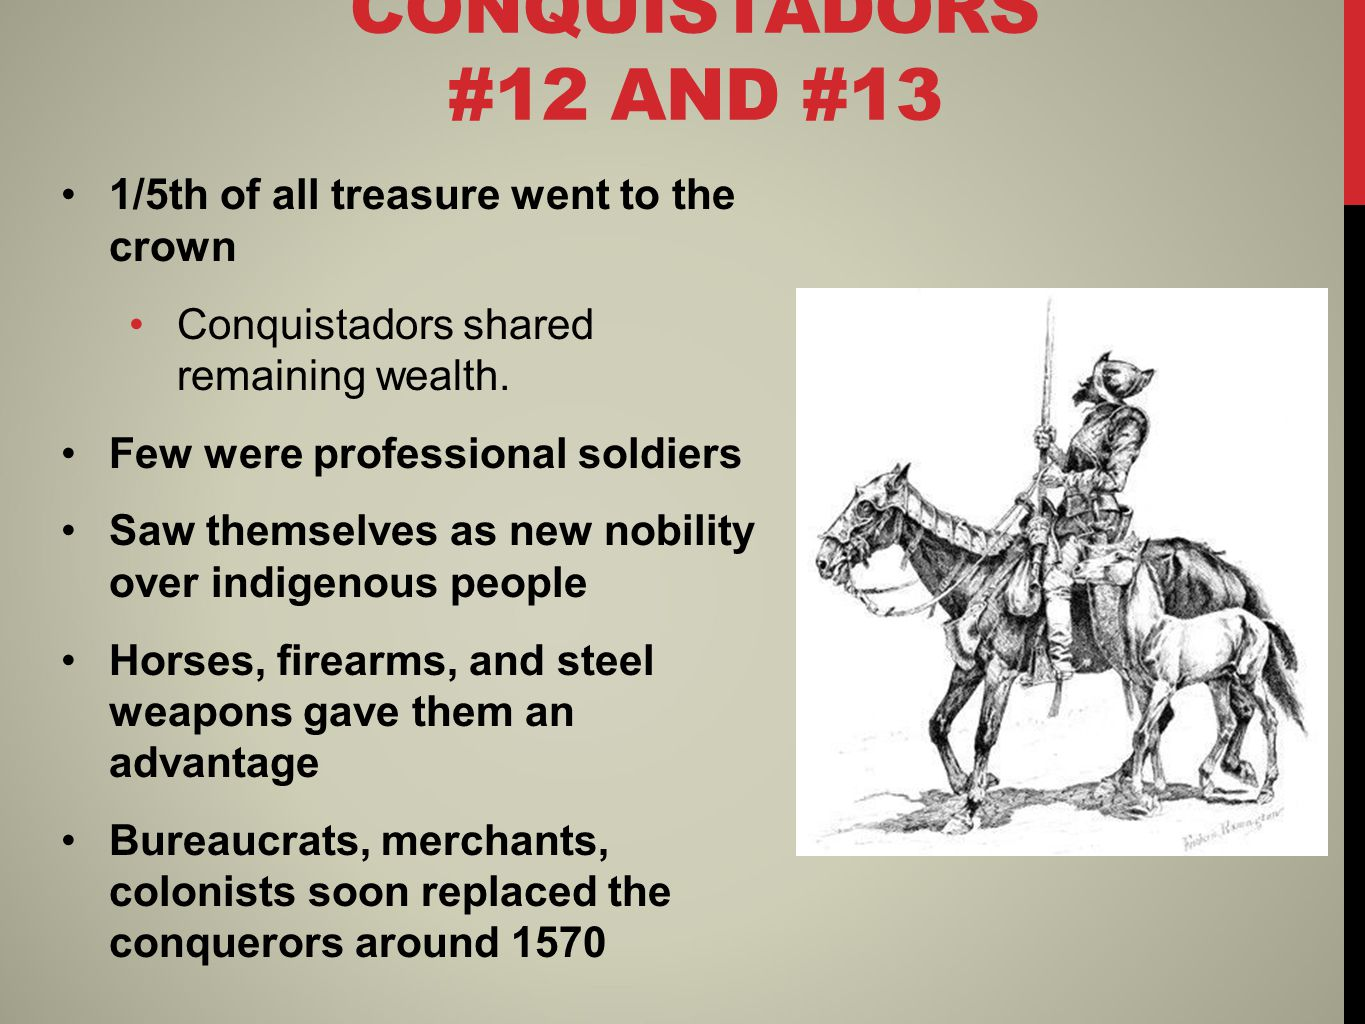 CONQUISTADORS #12 AND #13 1/5th of all treasure went to the crown Conquistadors shared remaining wealth.